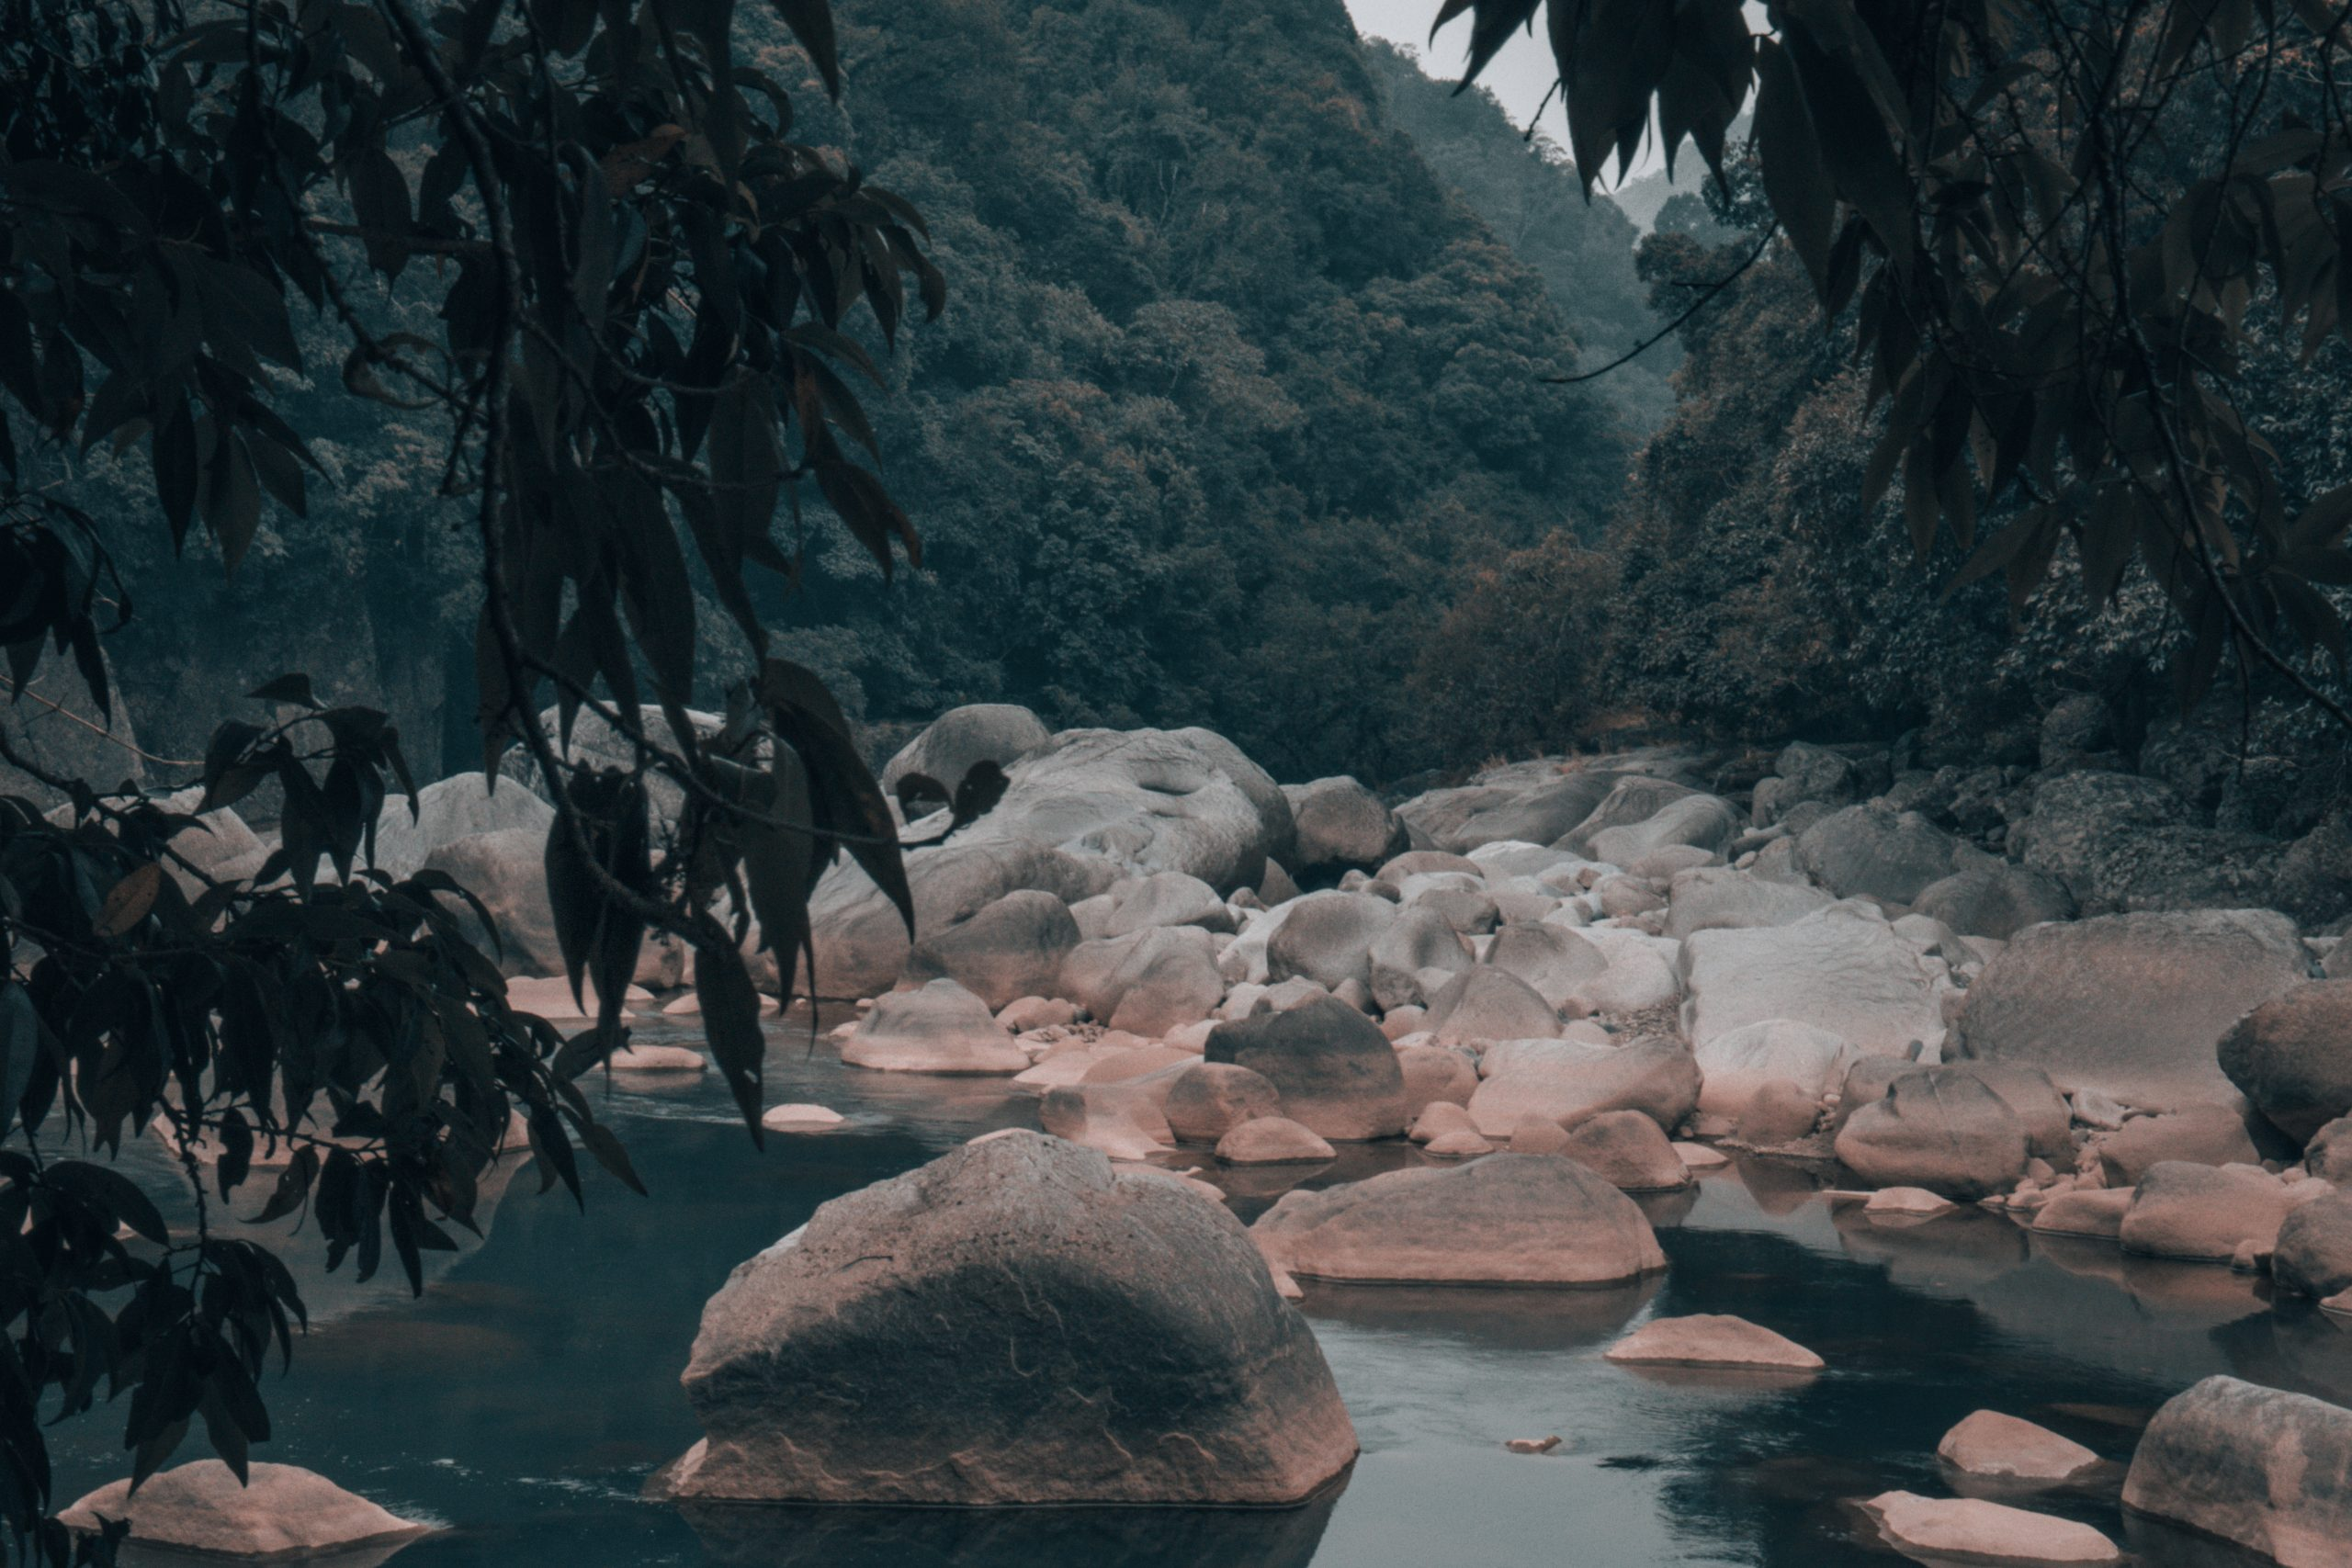 Rocks, water and jungle